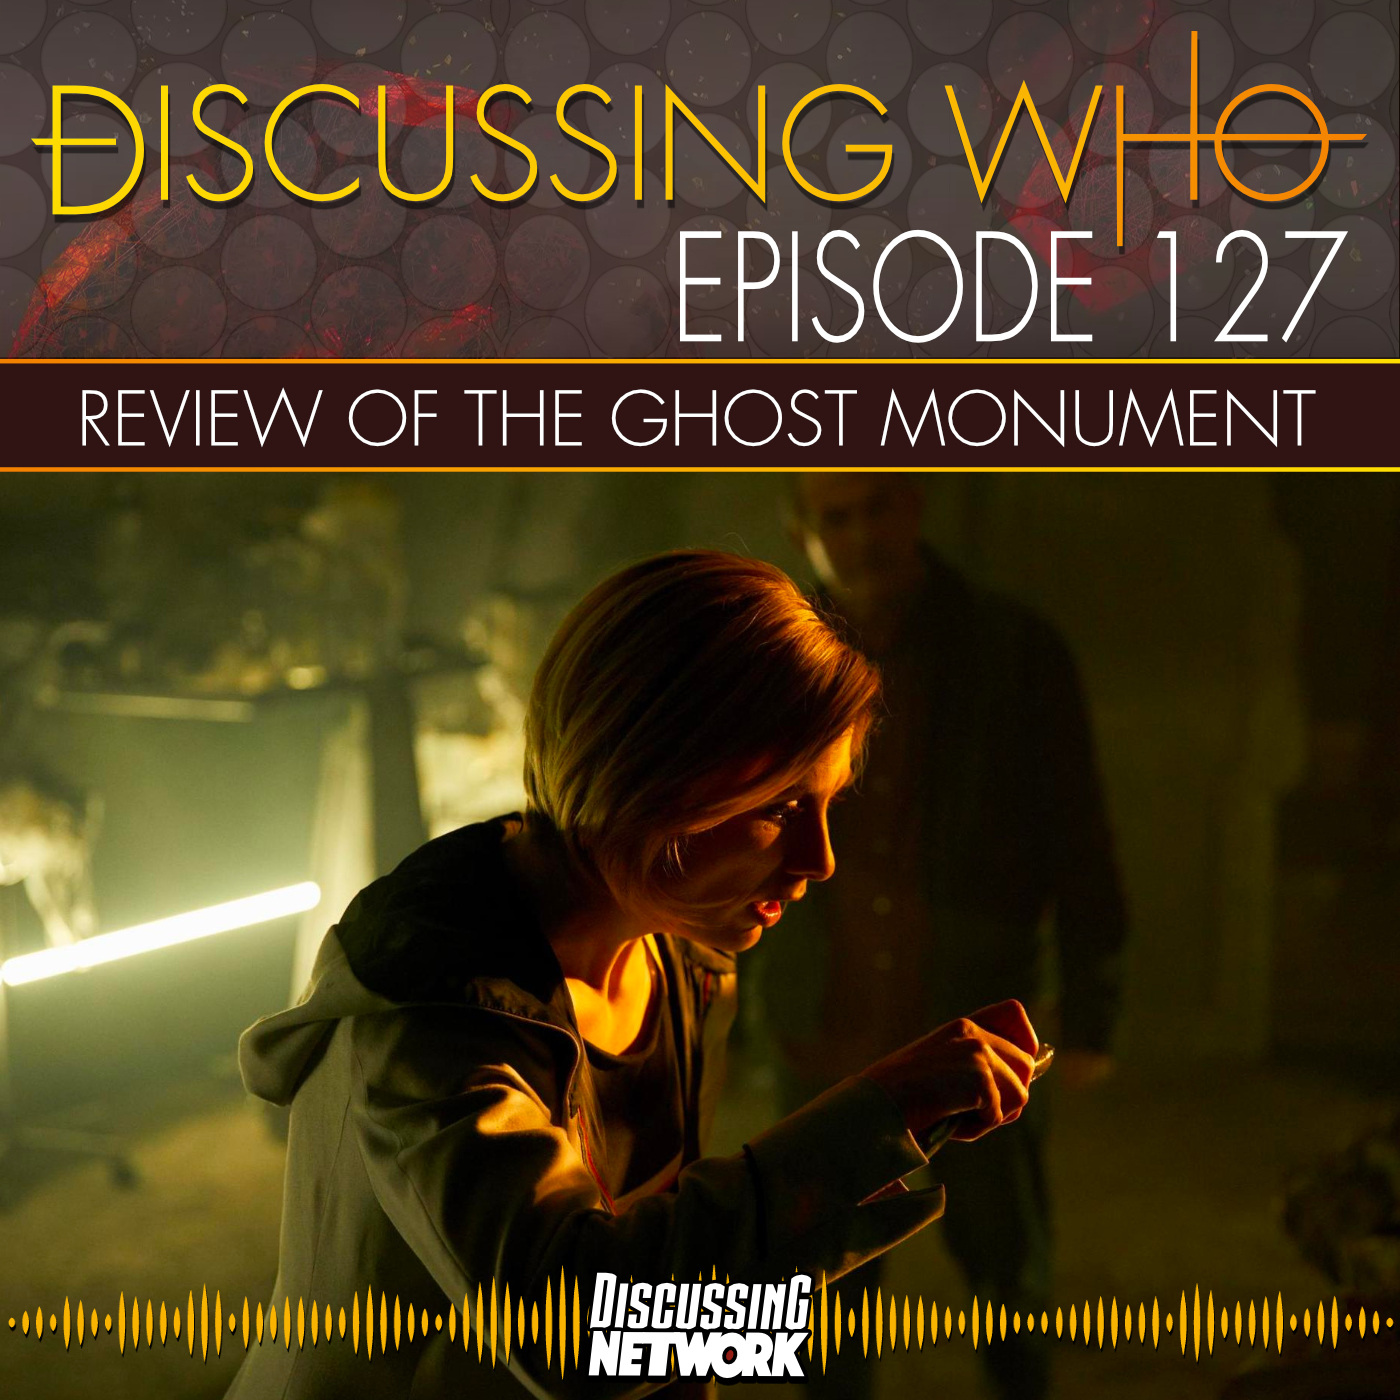 Review of The Ghost Monument